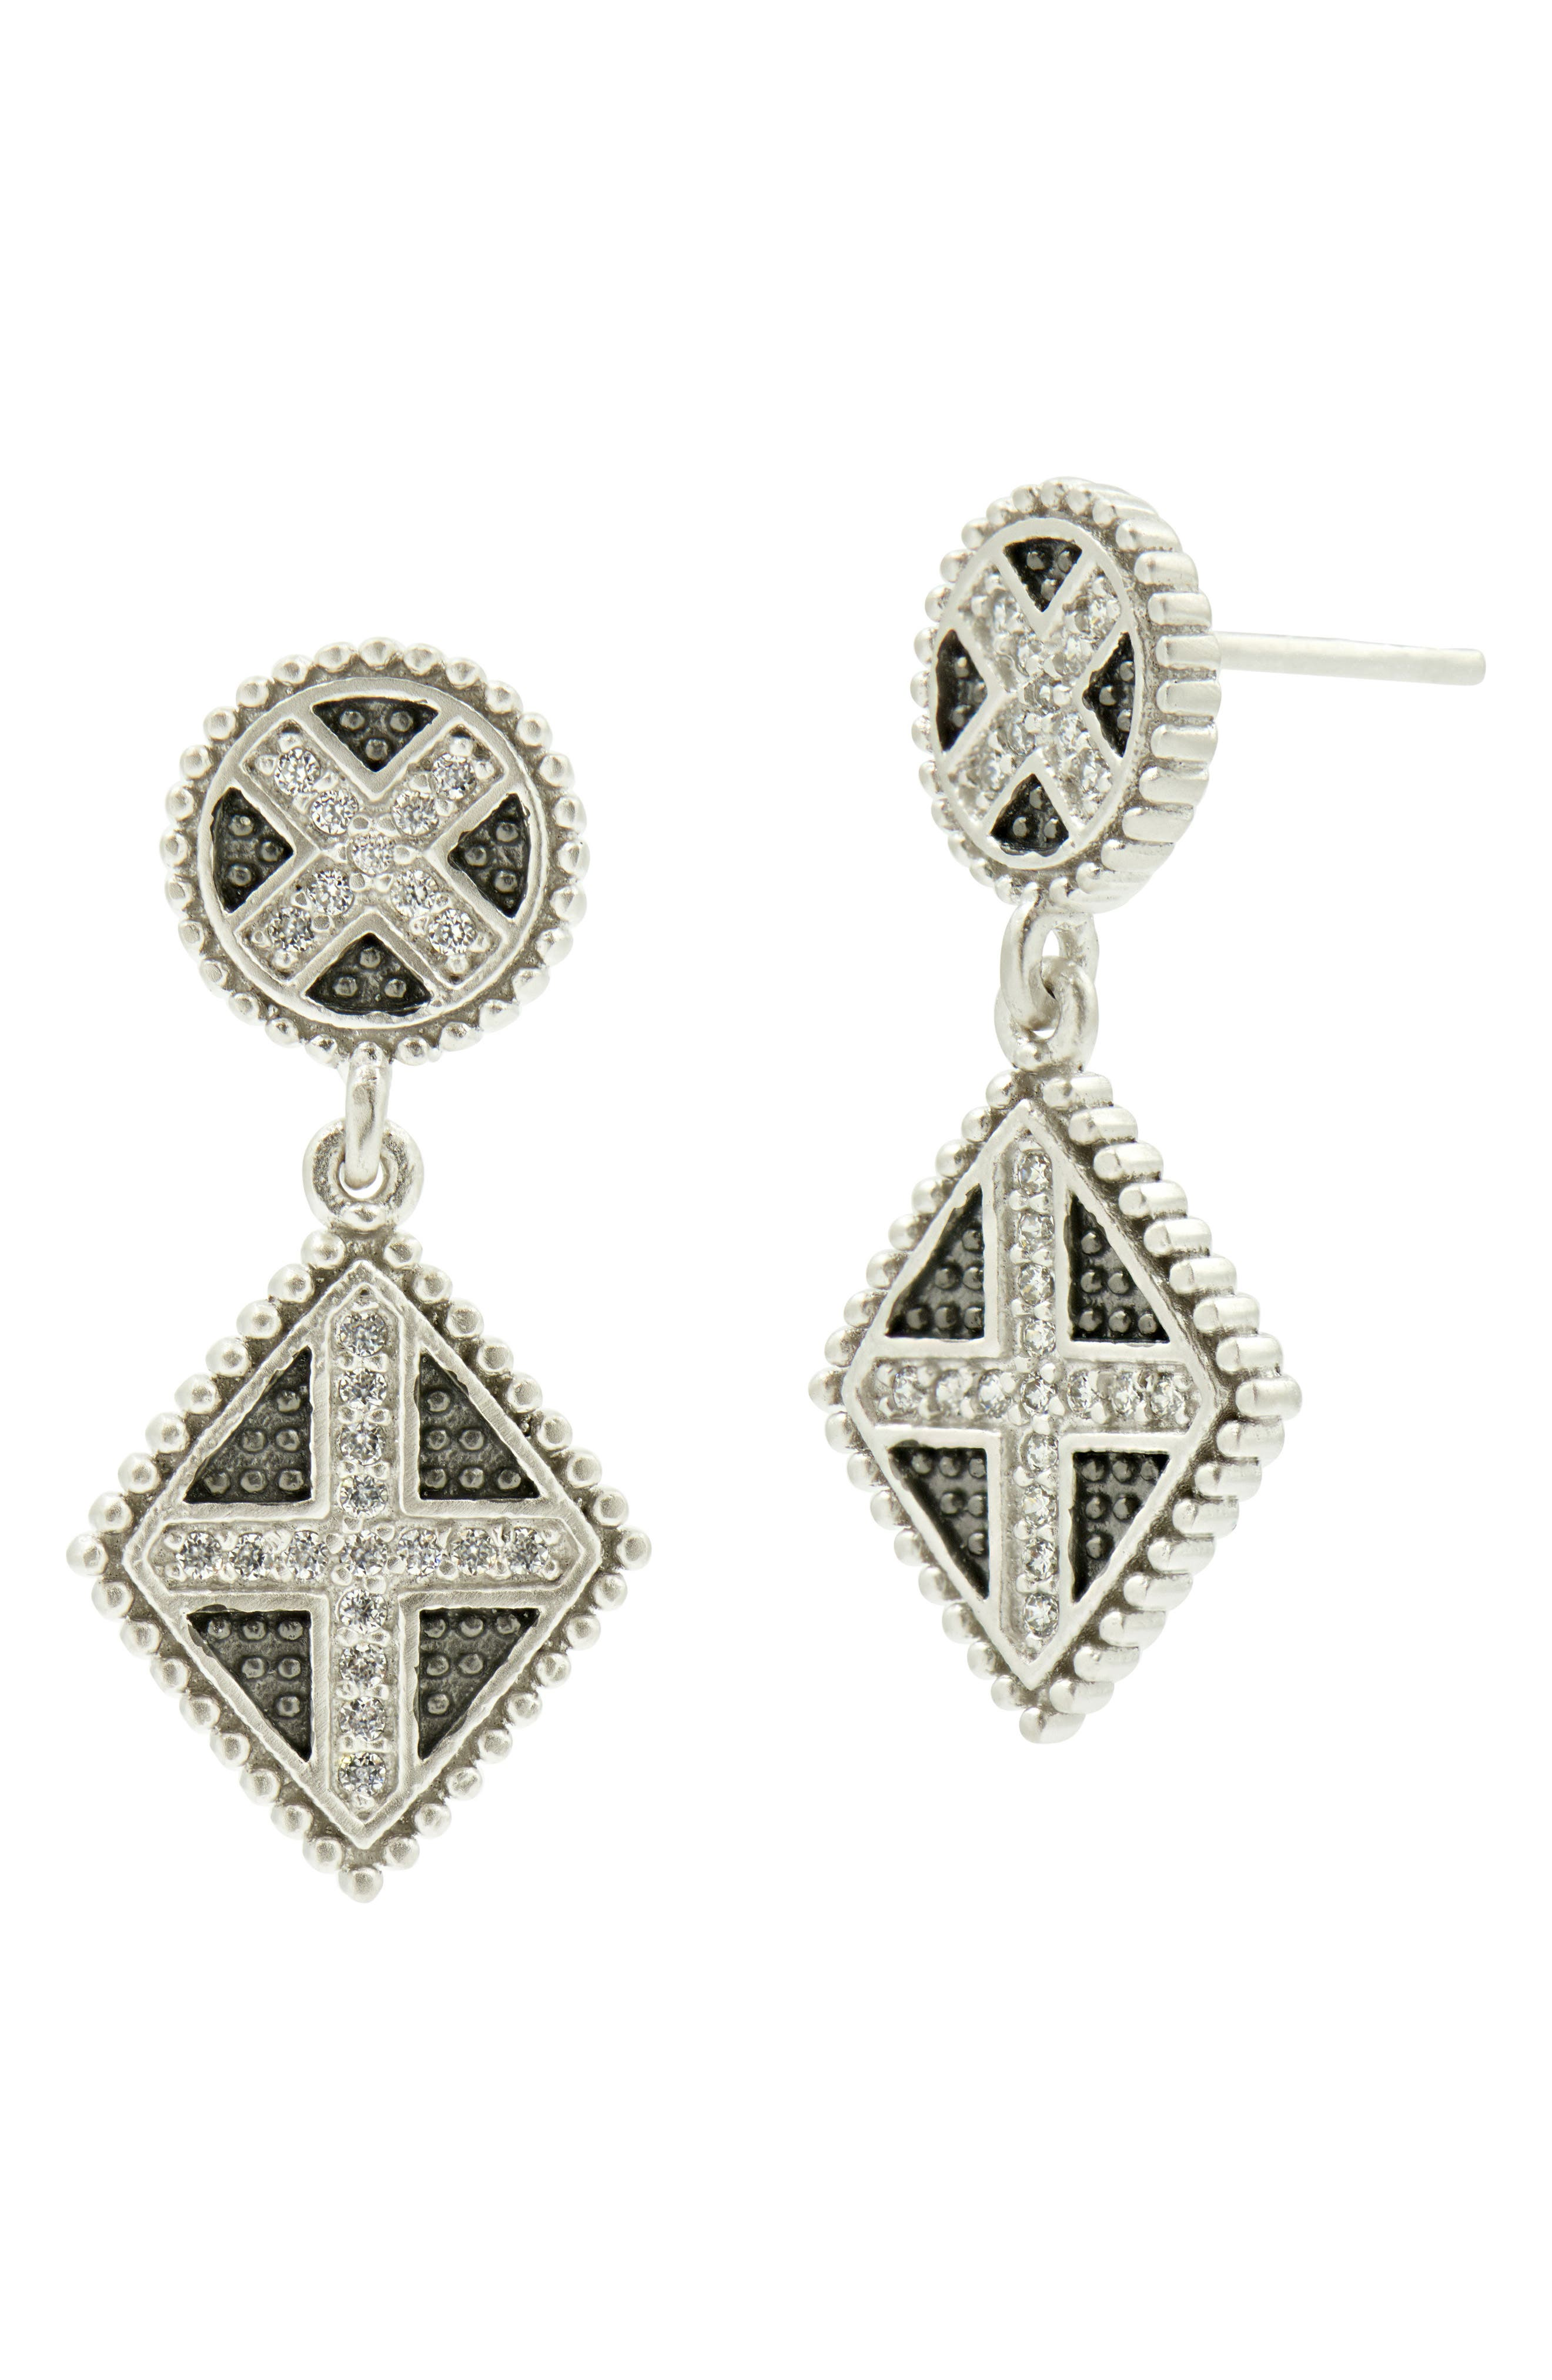 Industrial Finish Double Drop Earrings,                         Main,                         color, Silver/ Black Rhodium